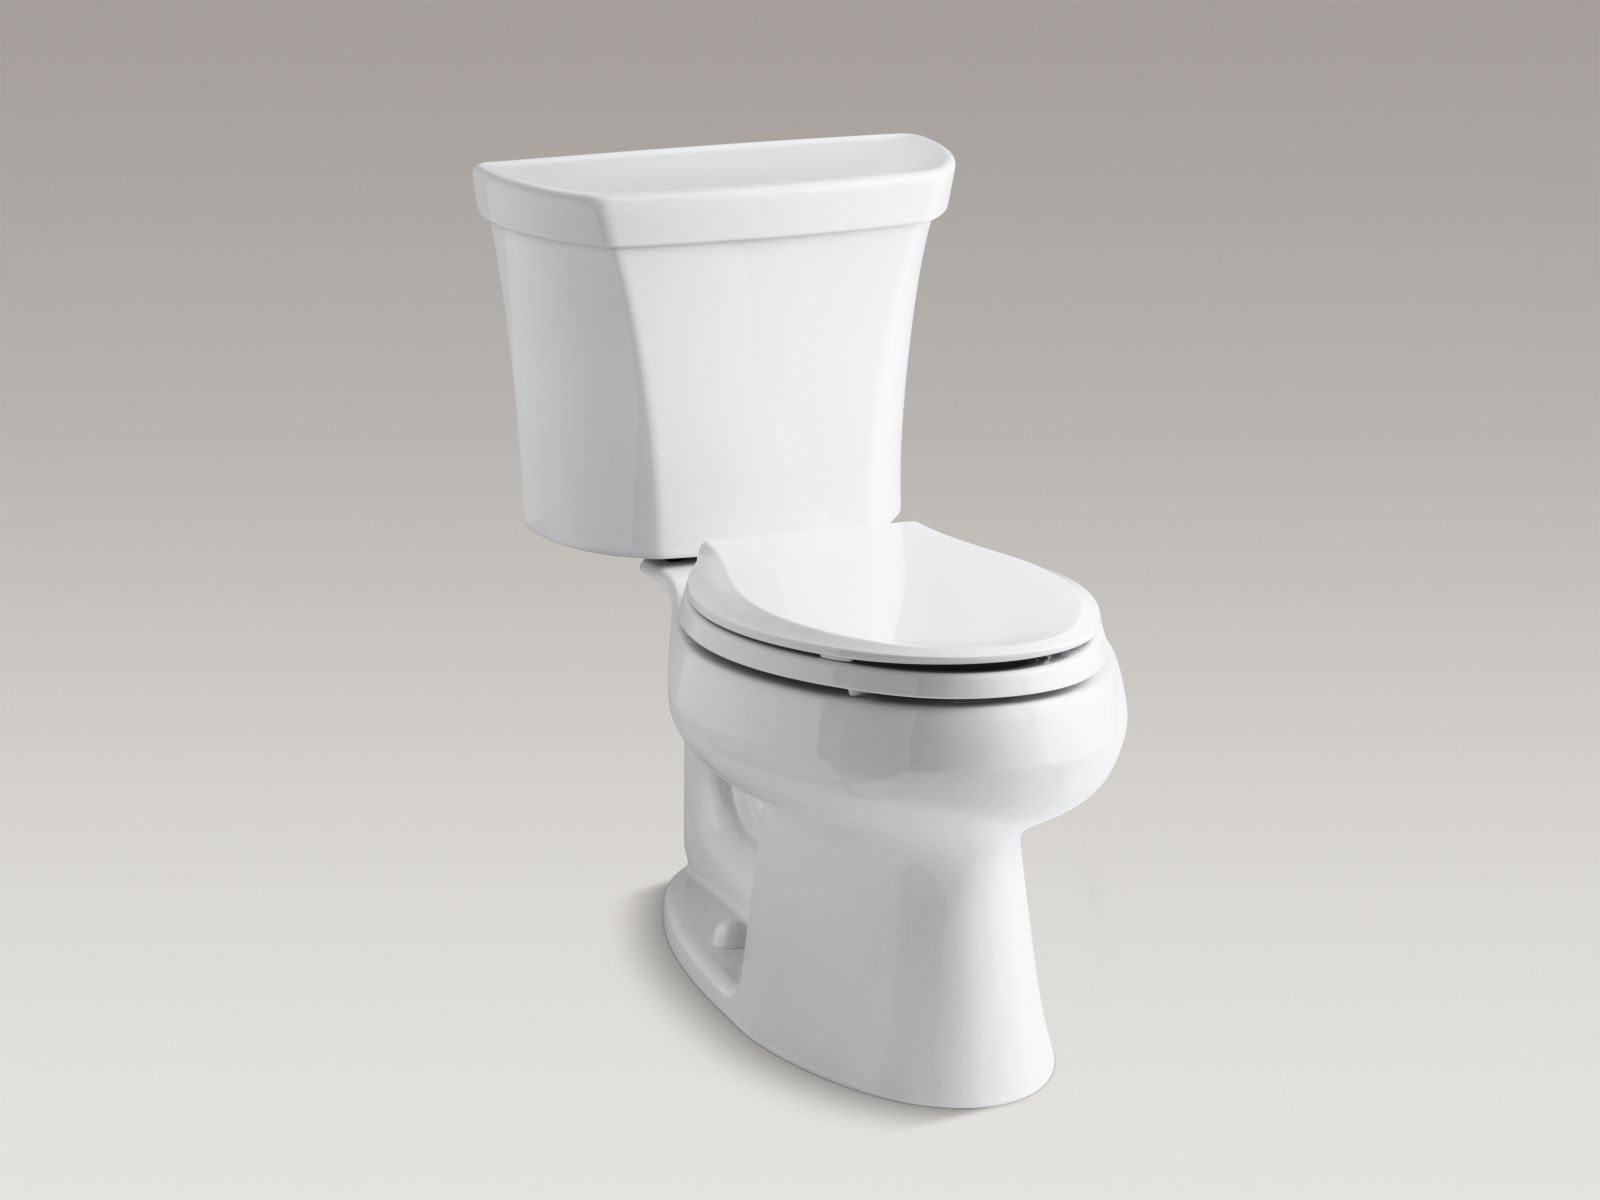 Kohler Wellworth® K-3988-RA-0 two-piece elongated dual-flush toilet with right-hand trip lever White